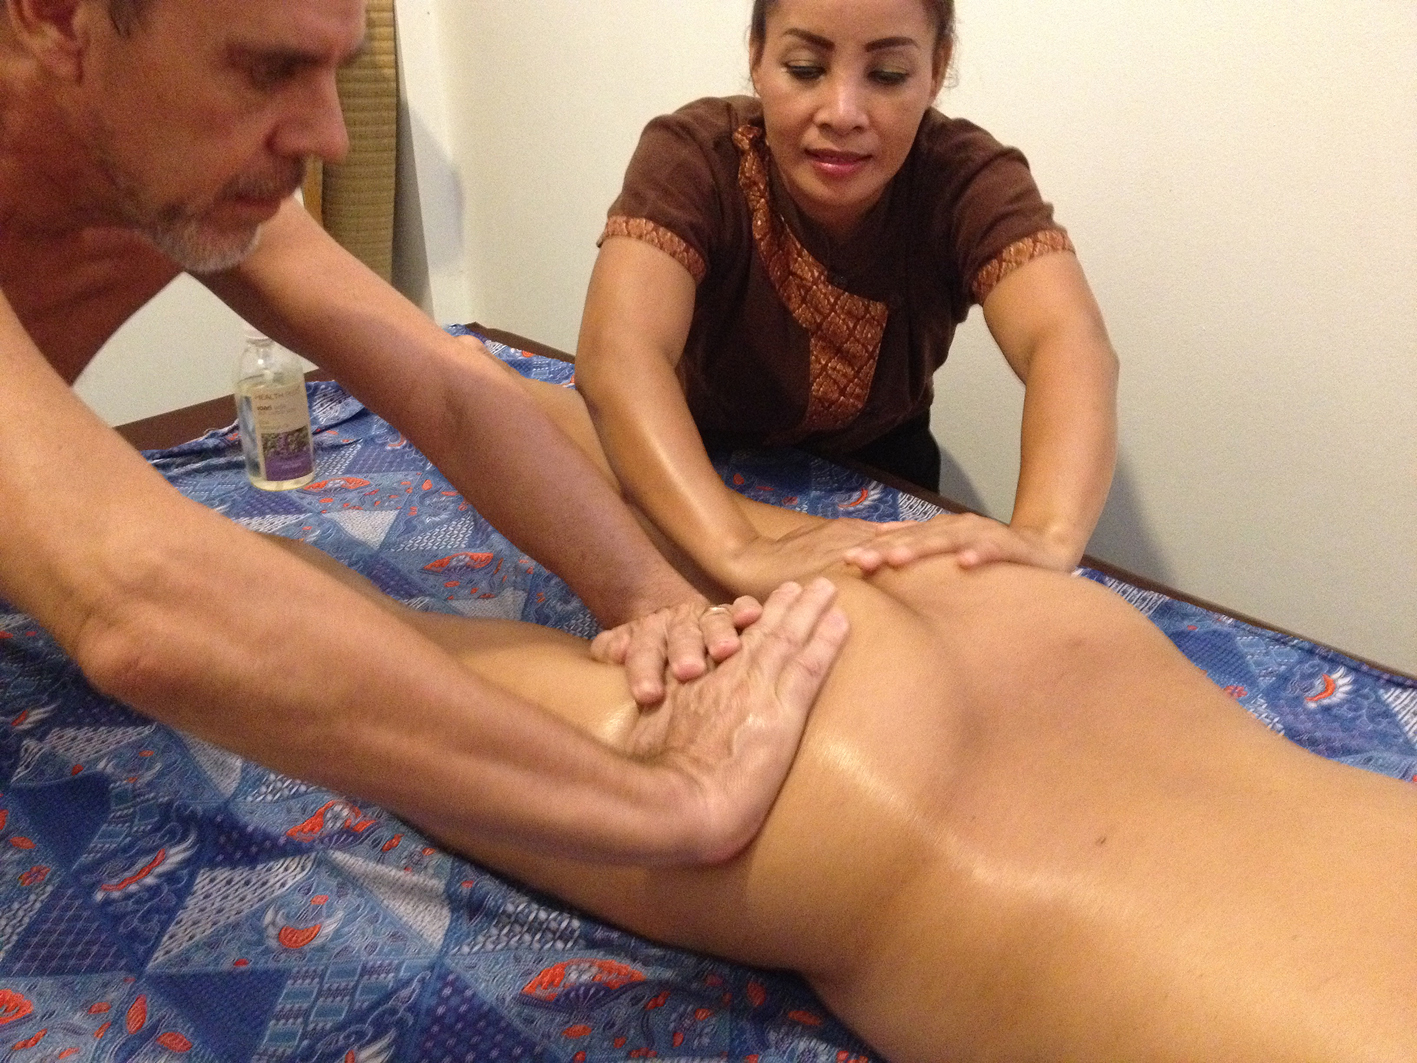 Nude massage course at Barefeet